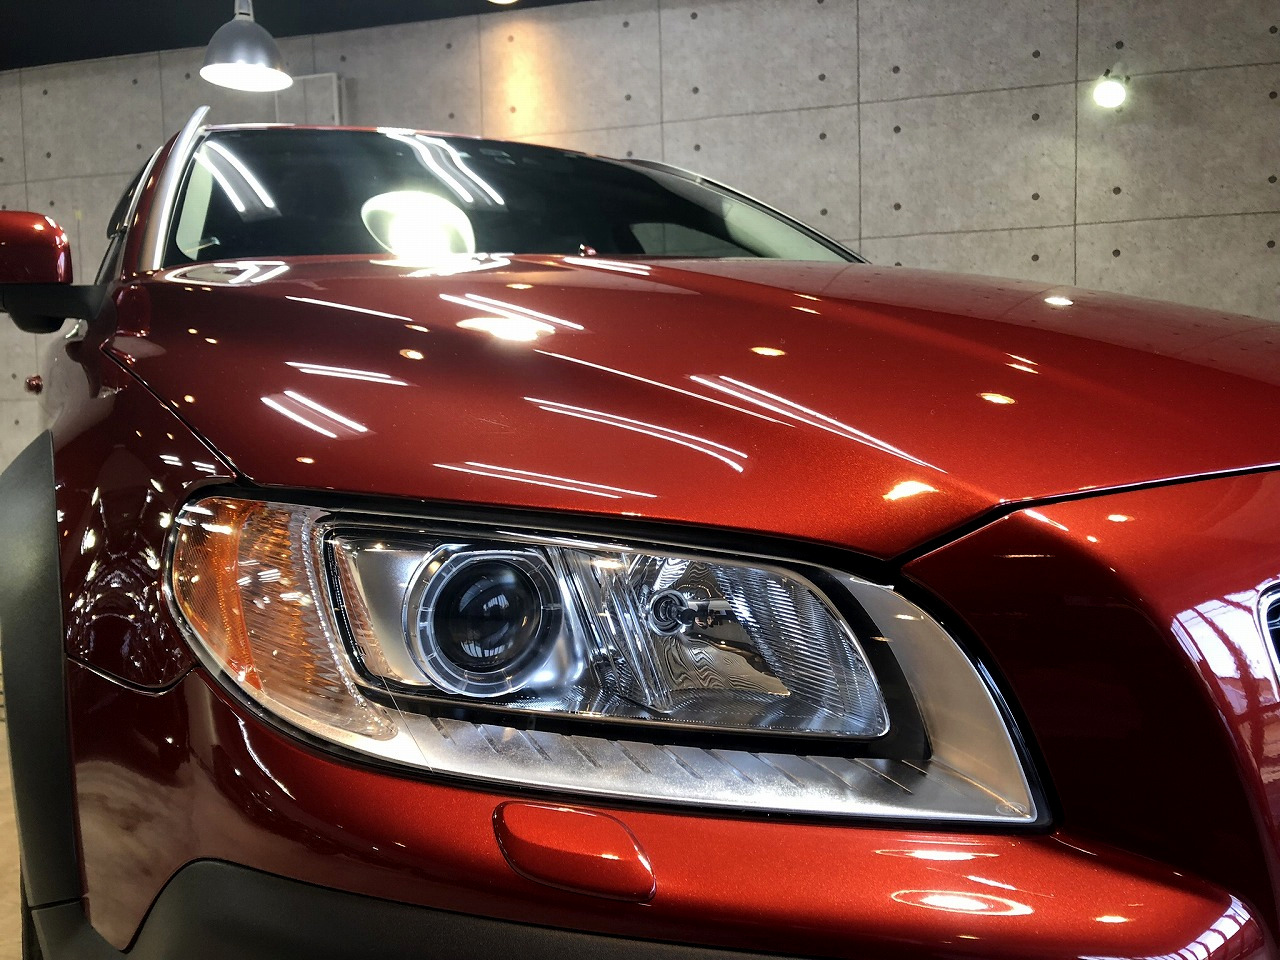 xc70_red_002